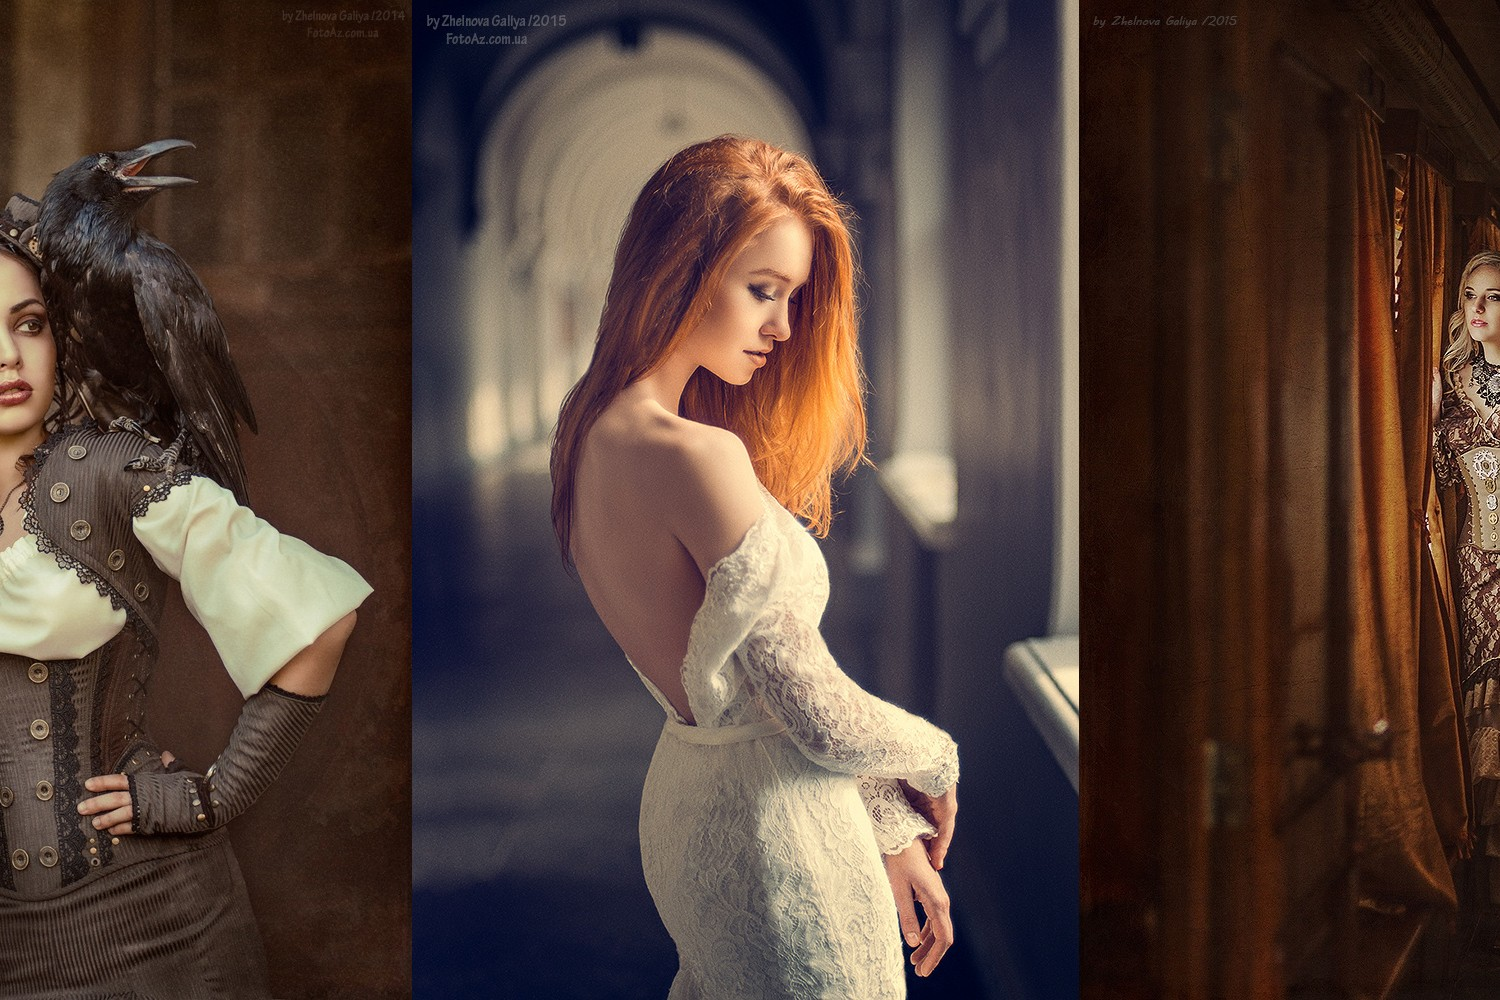 The Sexy and Surreal Portraits of Galiya Zhelnova (NSFW)